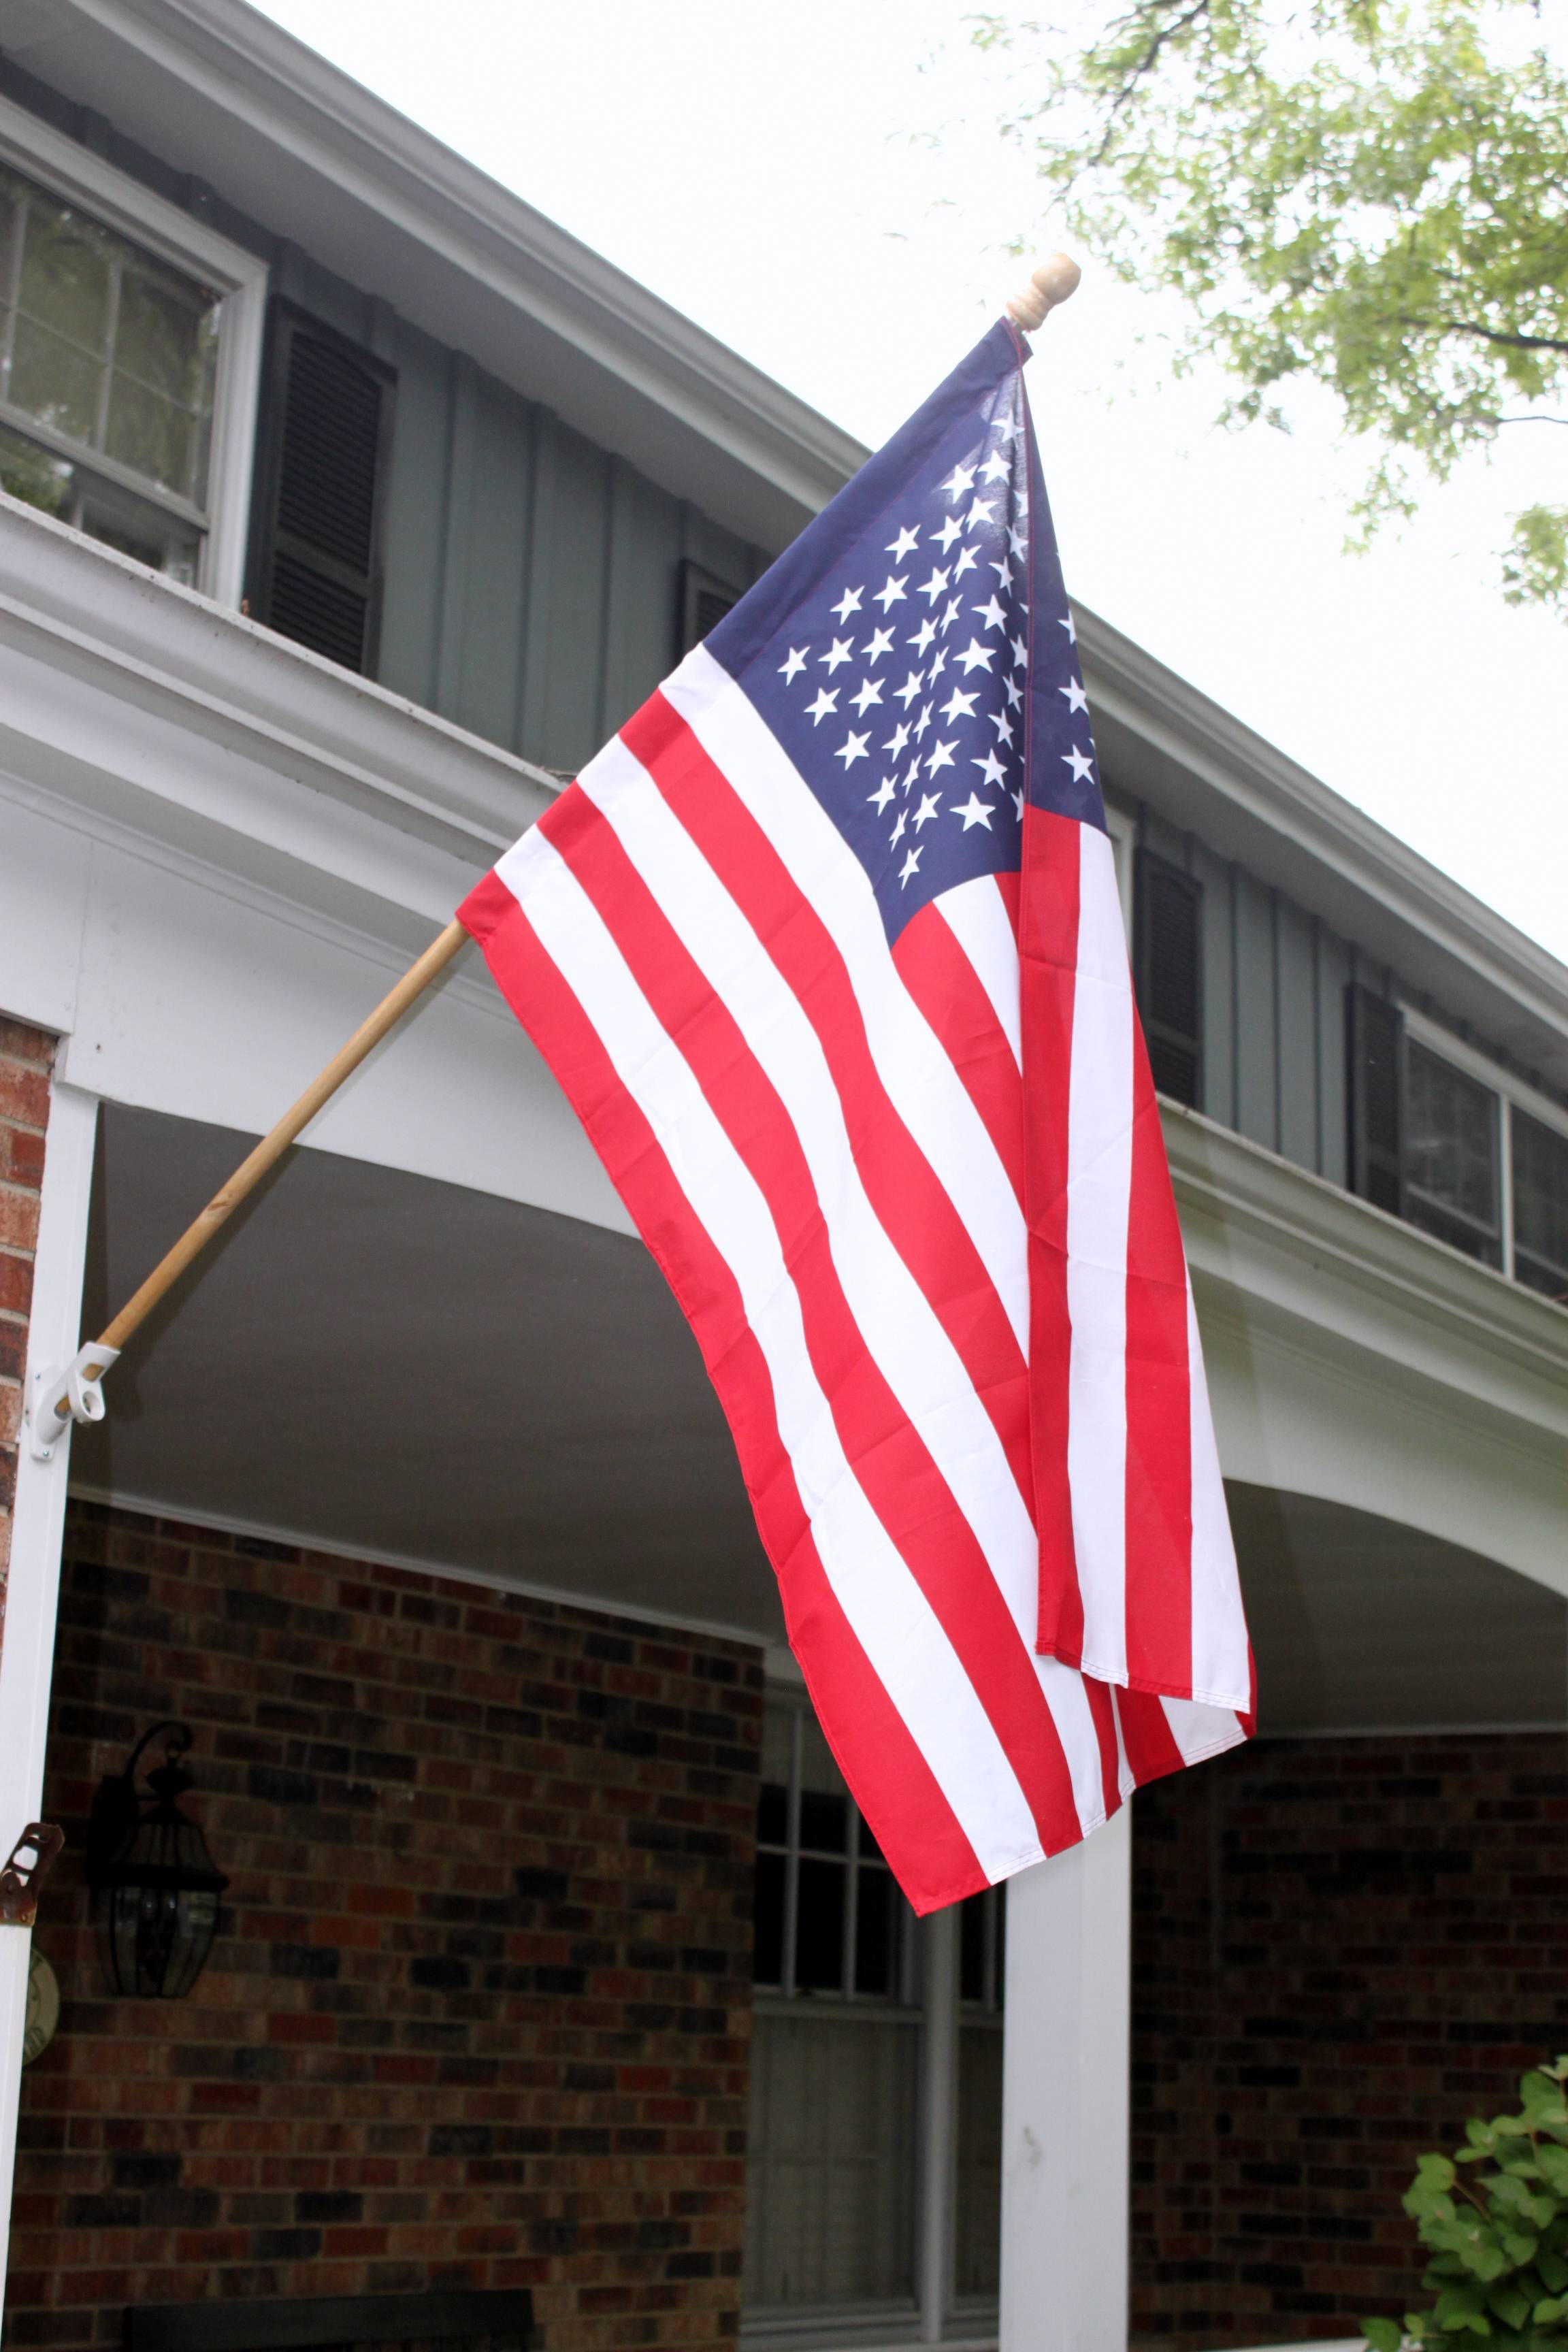 A flag in need of retirement should be disposed of properly and never placed in the trash, Waste Management says.